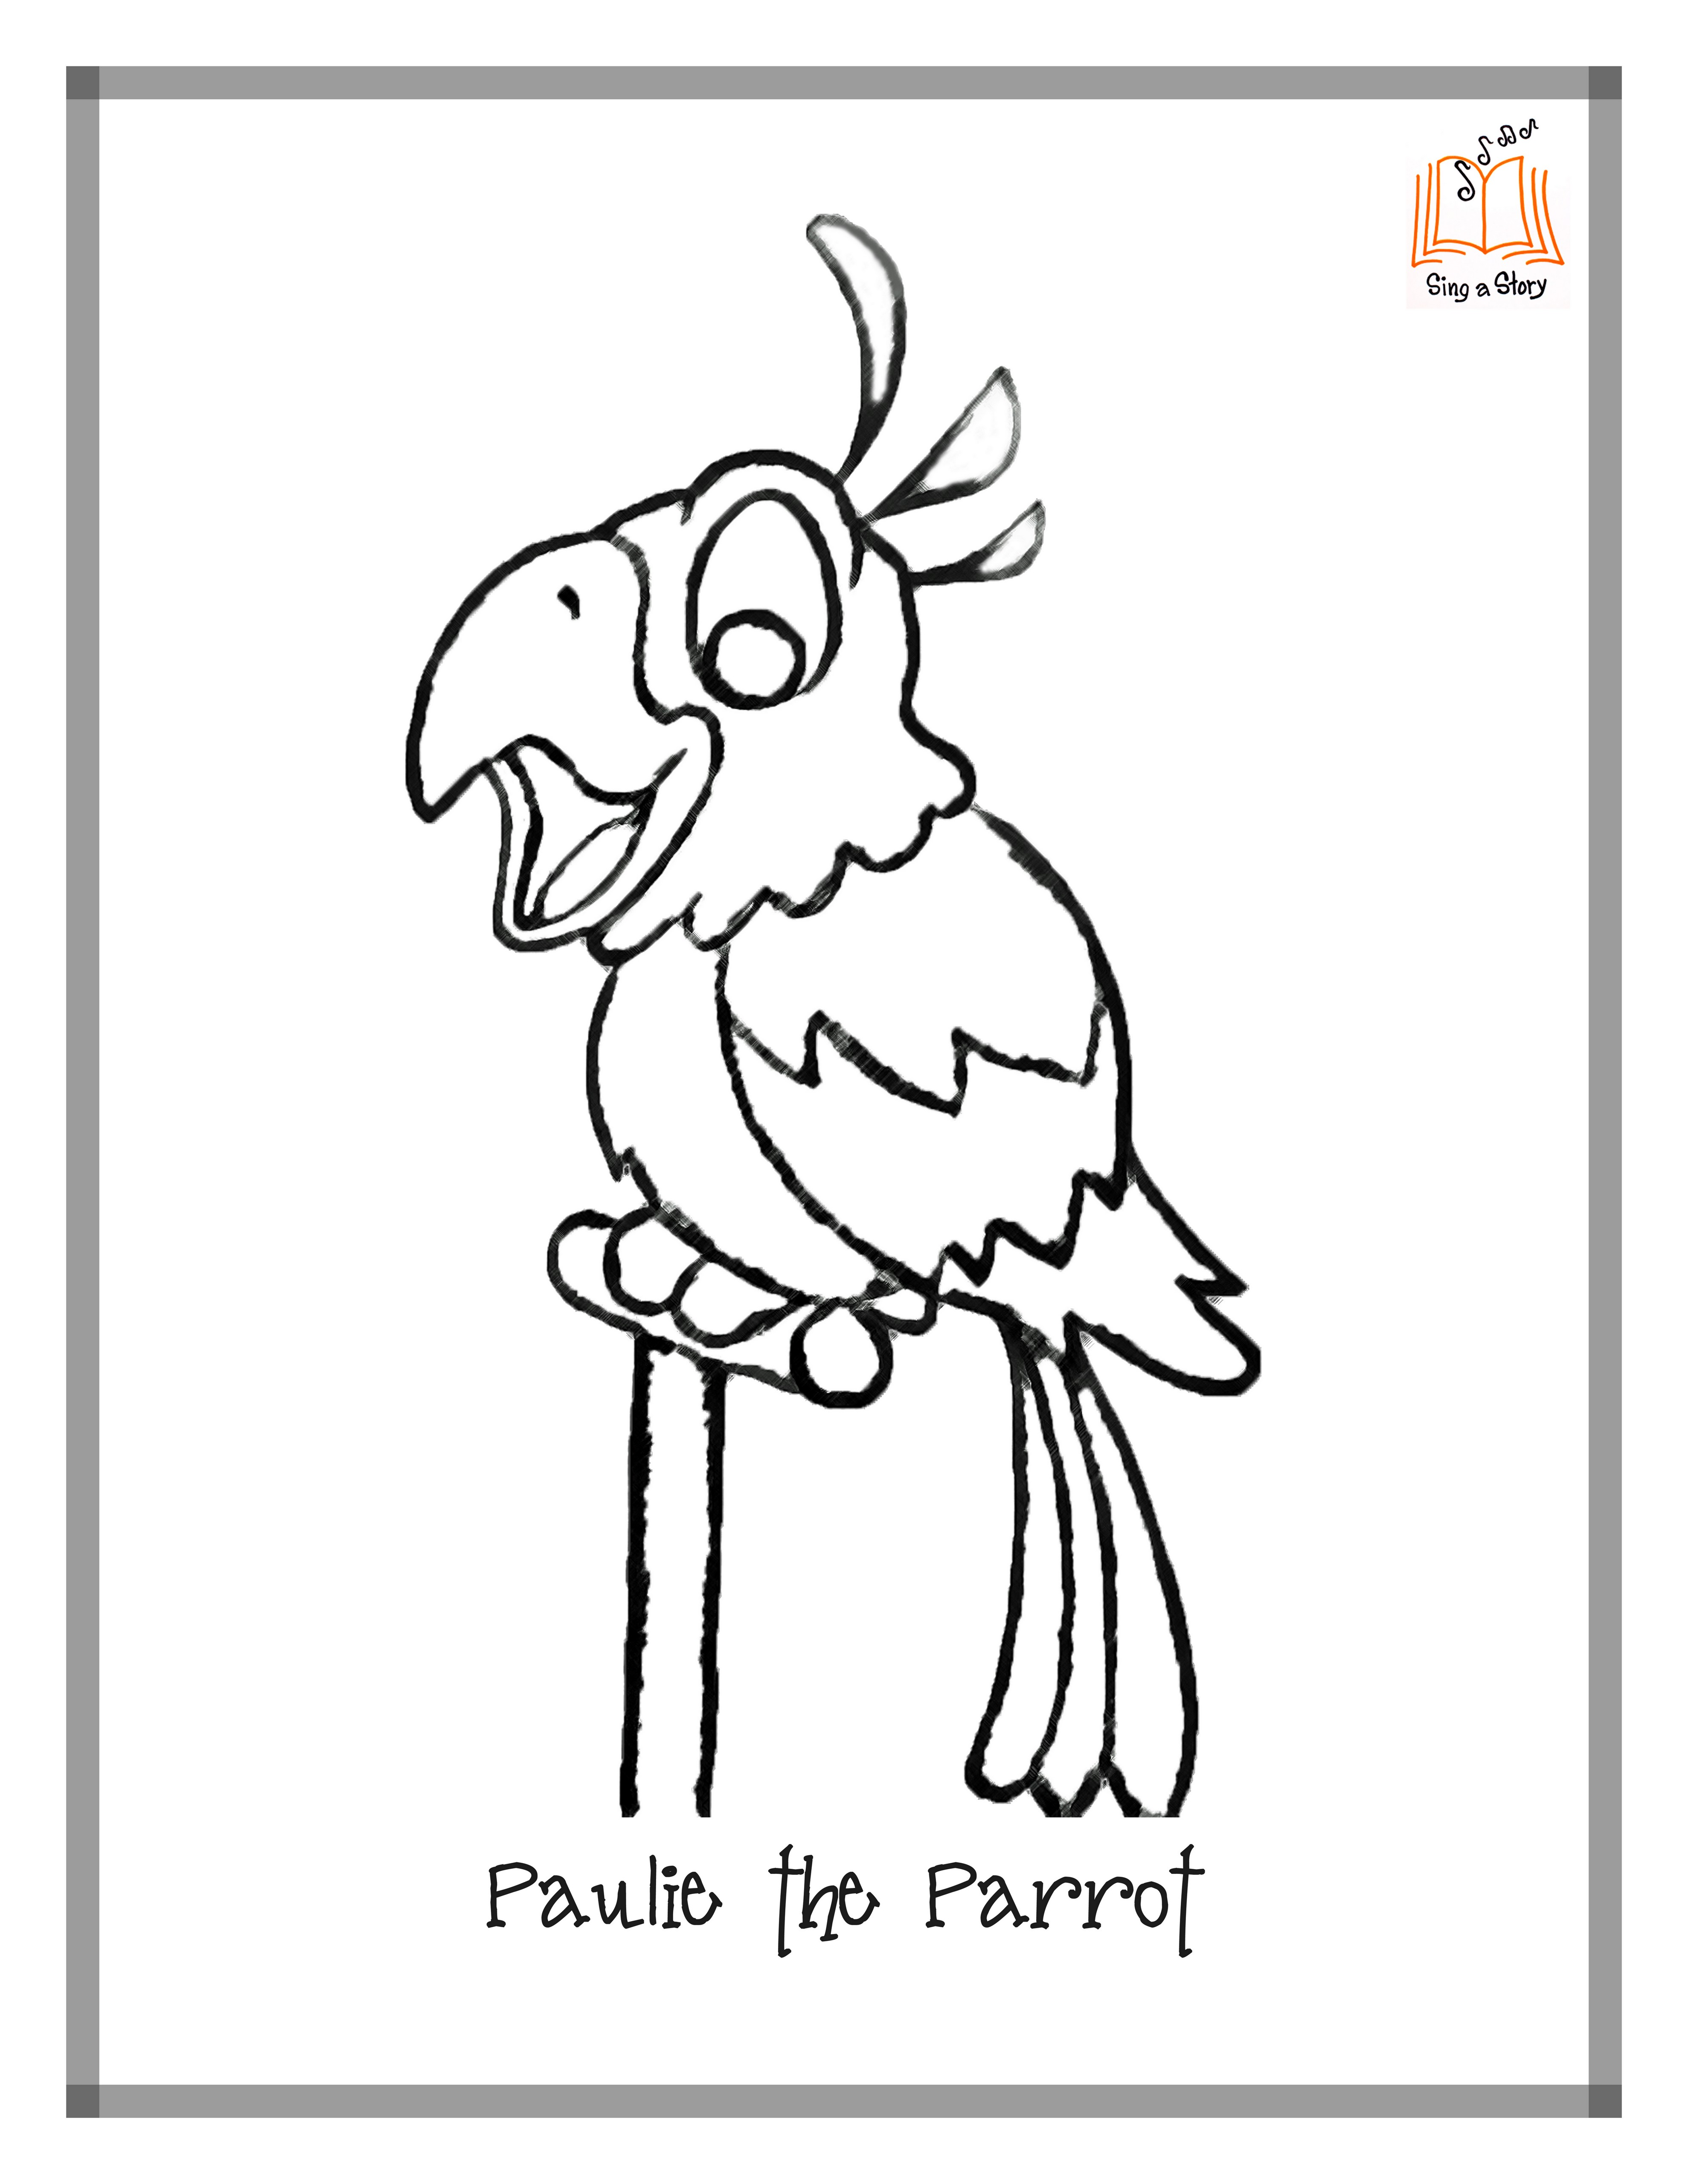 Pirate Parrot Drawing at GetDrawings.com | Free for personal use ...